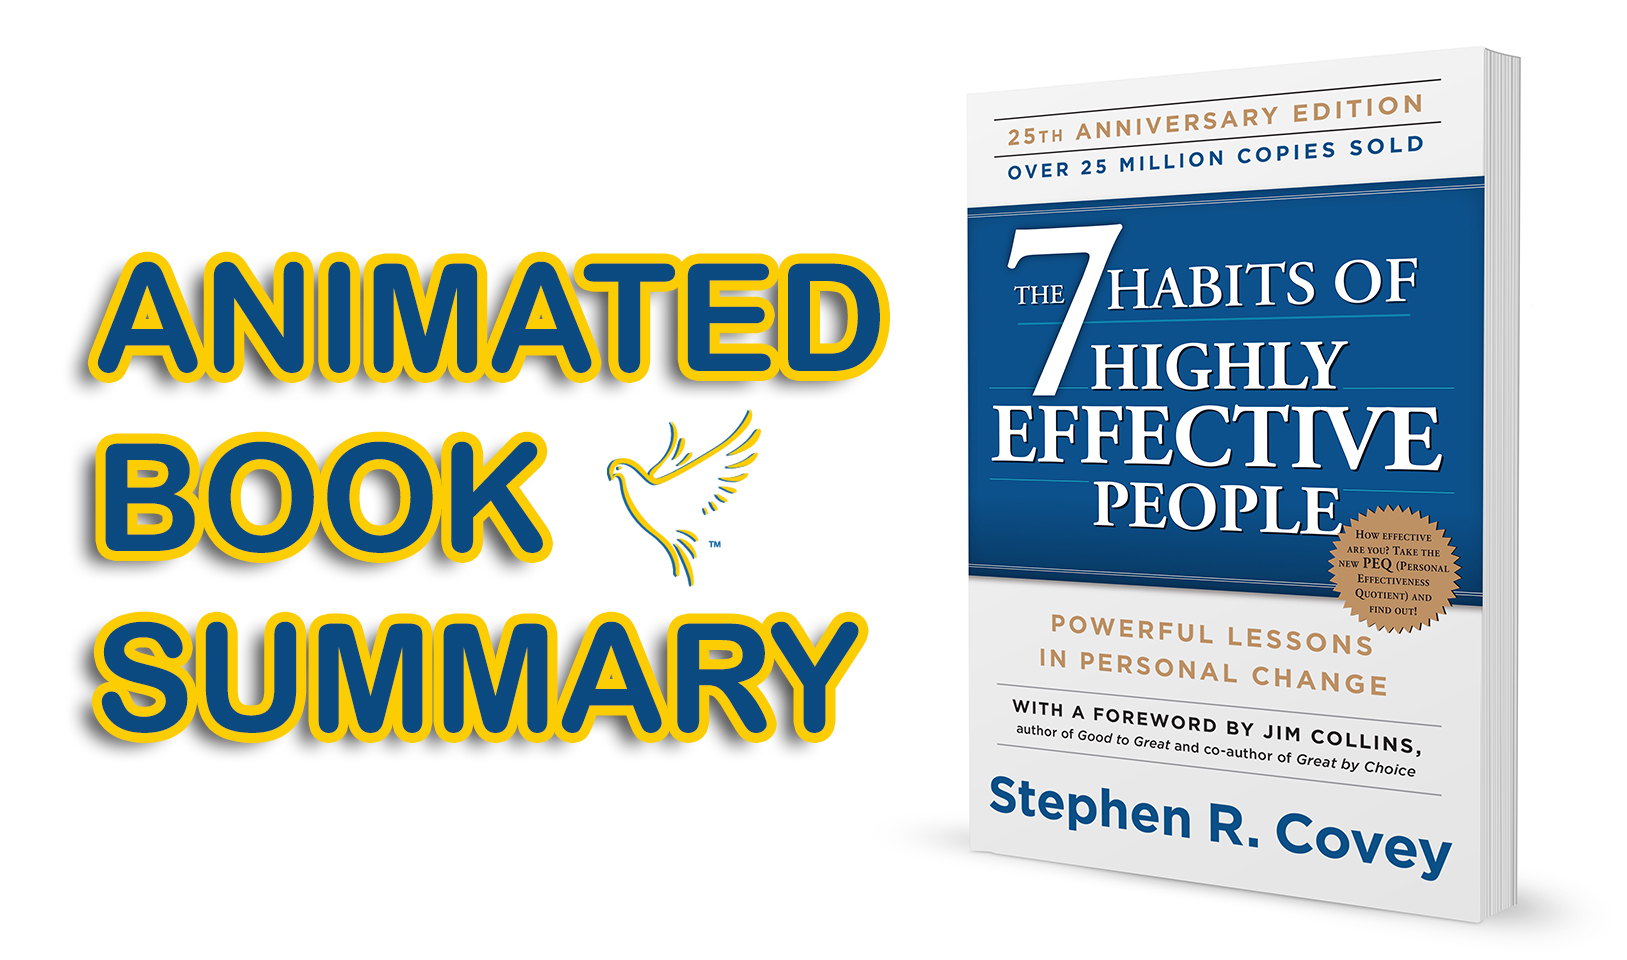 BOOK SUMMARY: 'THE 7 HABITS OF HIGHLY EFFECTIVE PEOPLE' BY STEPHEN COVEY (ANIMATED VIDEO)